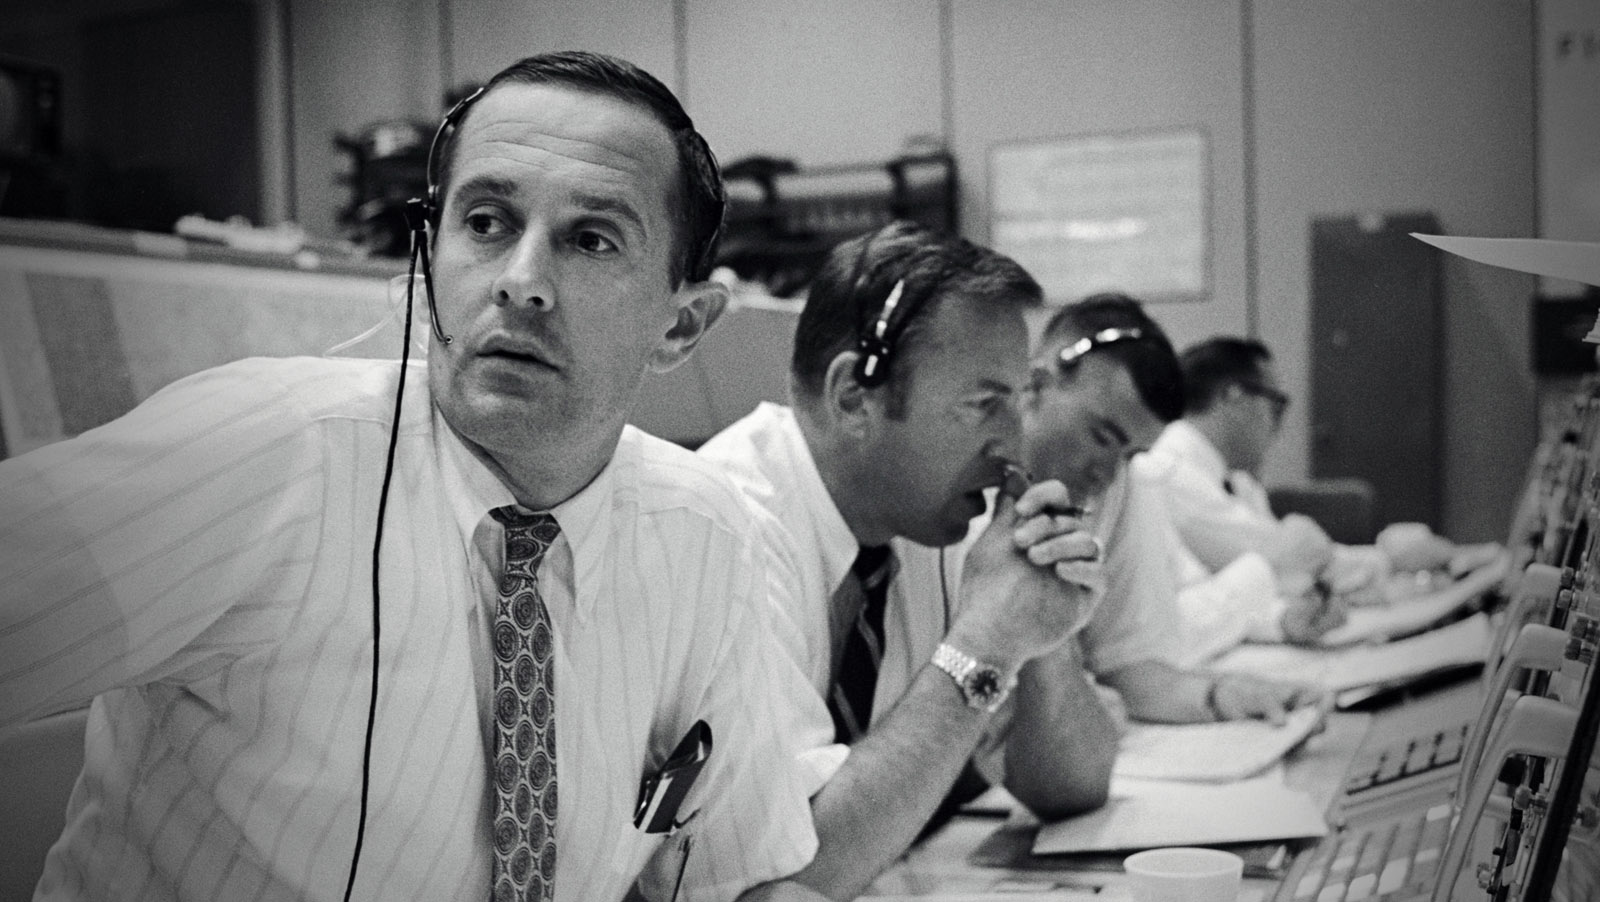 Charlie Duke at Mission Control in 1969. (image courtesy NASA)